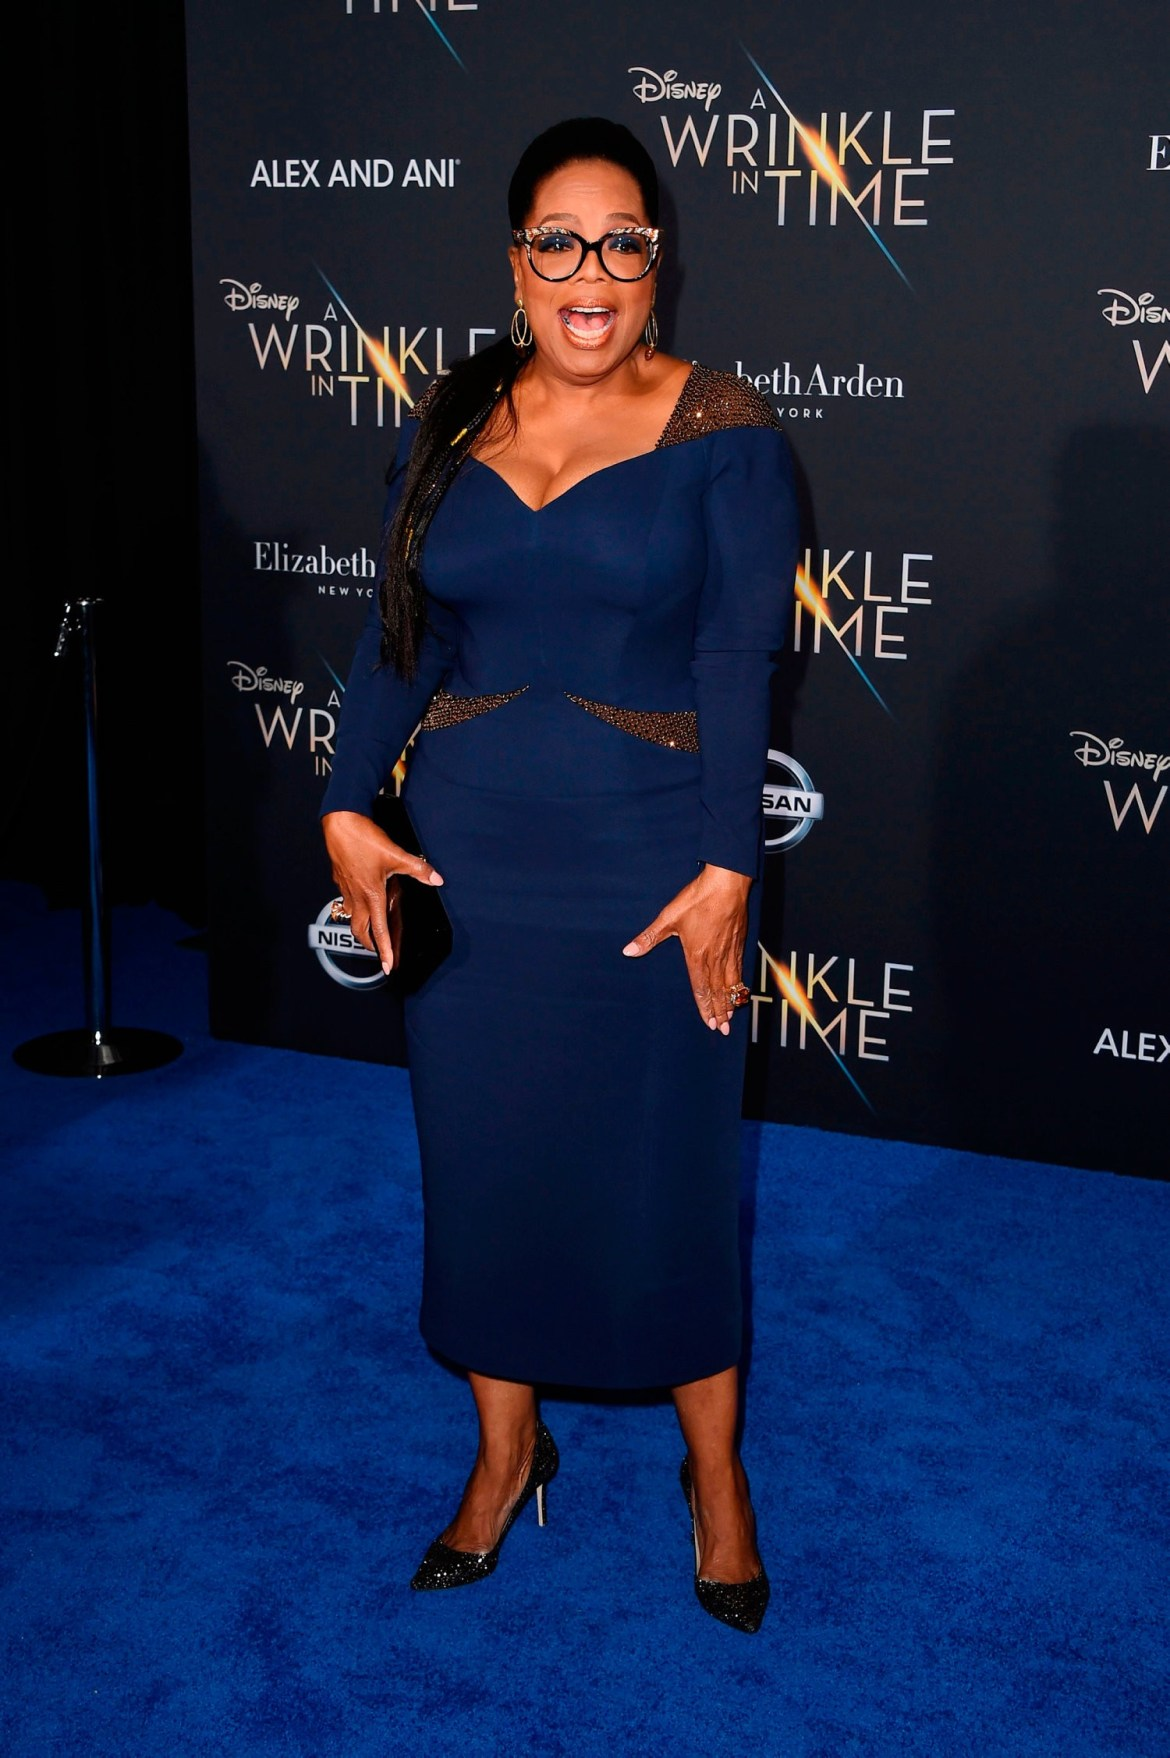 Here is a close-up photo of Oprah Winfrey at the